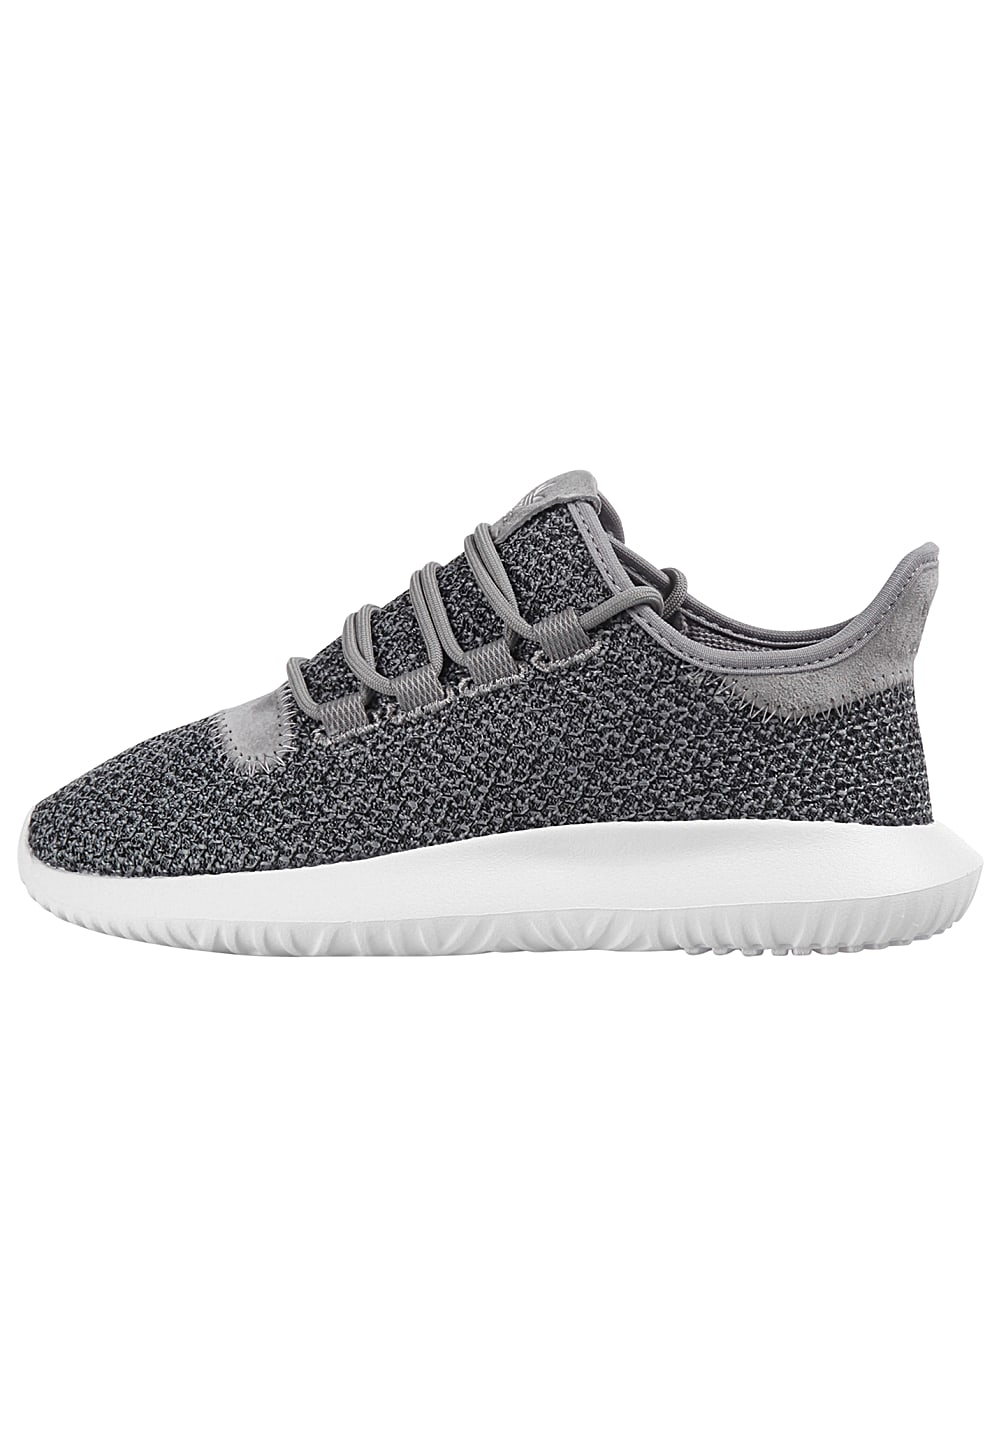 ... ADIDAS Tubular Shadow - Baskets pour Femme - Gris. Previous. Next. Previous